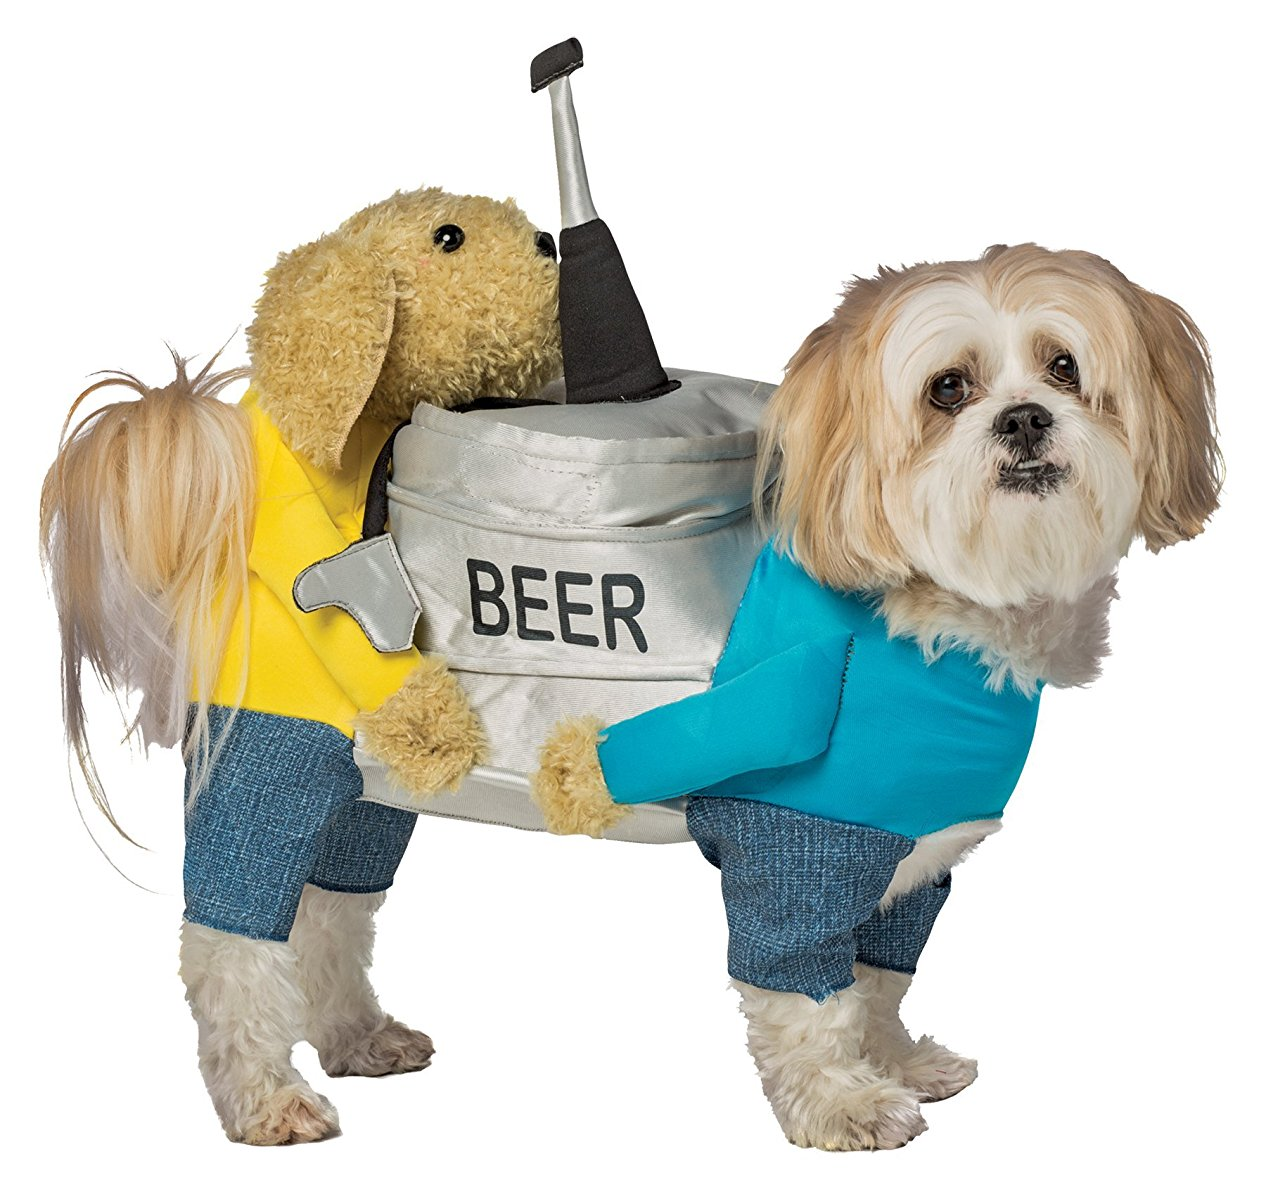 Dogs Carrying Beer Keg Pet Costume, L-XL